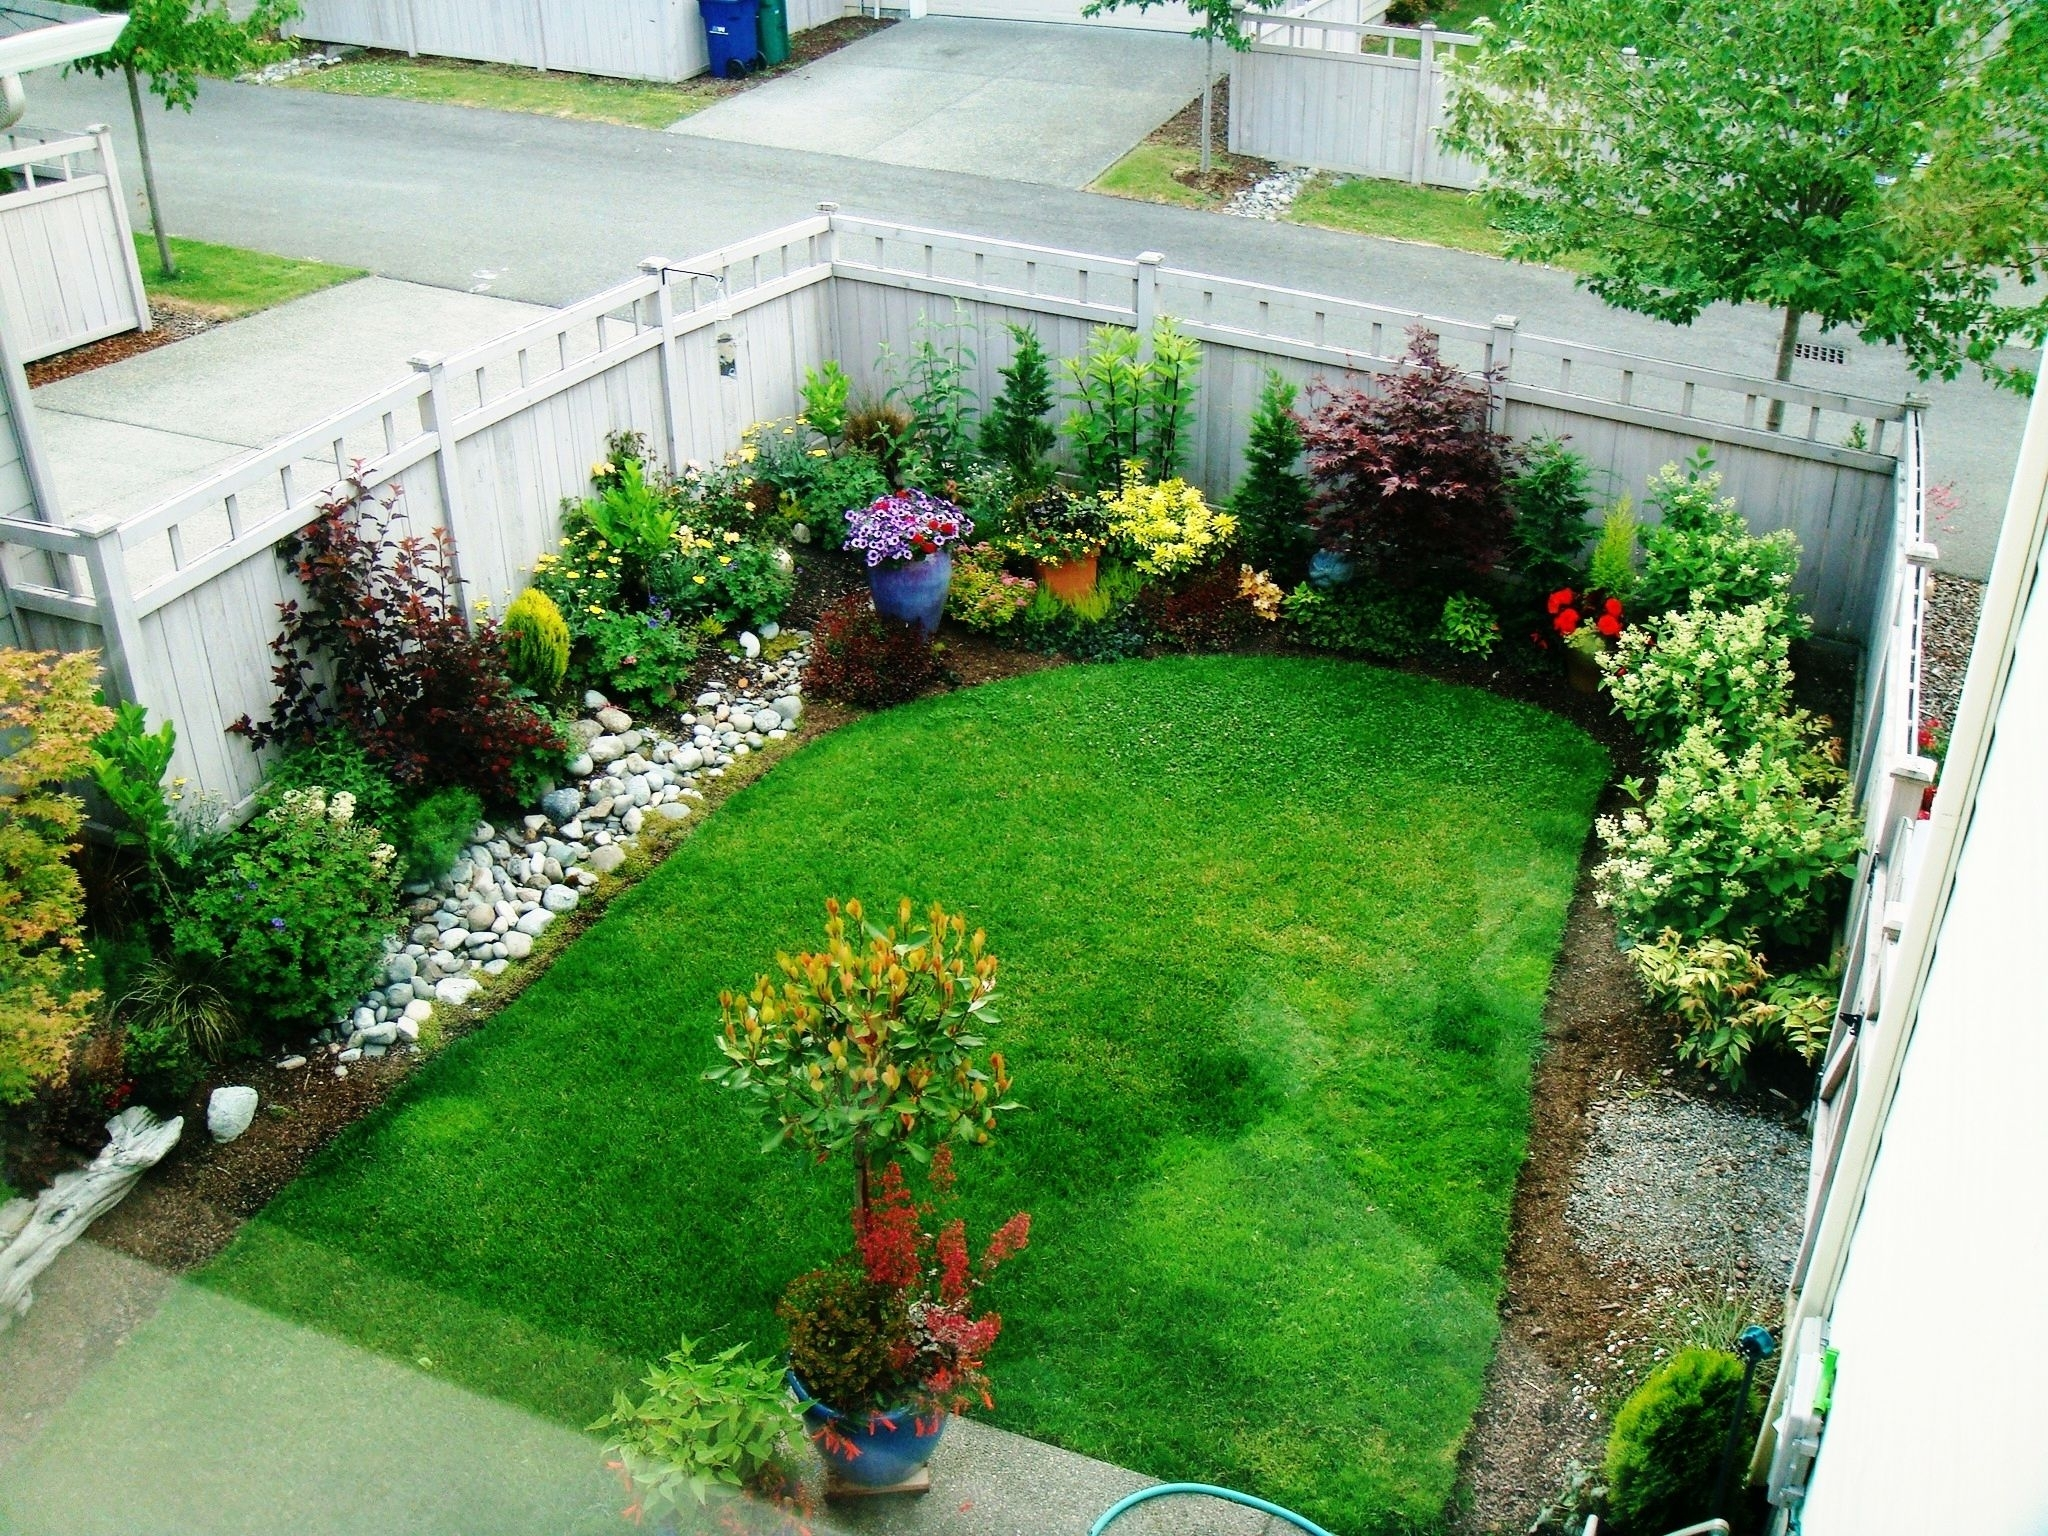 Is Your Yard Or Garden Small On Space? Get Big Tips And Ideas On pertaining to Best Layout For Small Garden Design Ideas Design Ideas